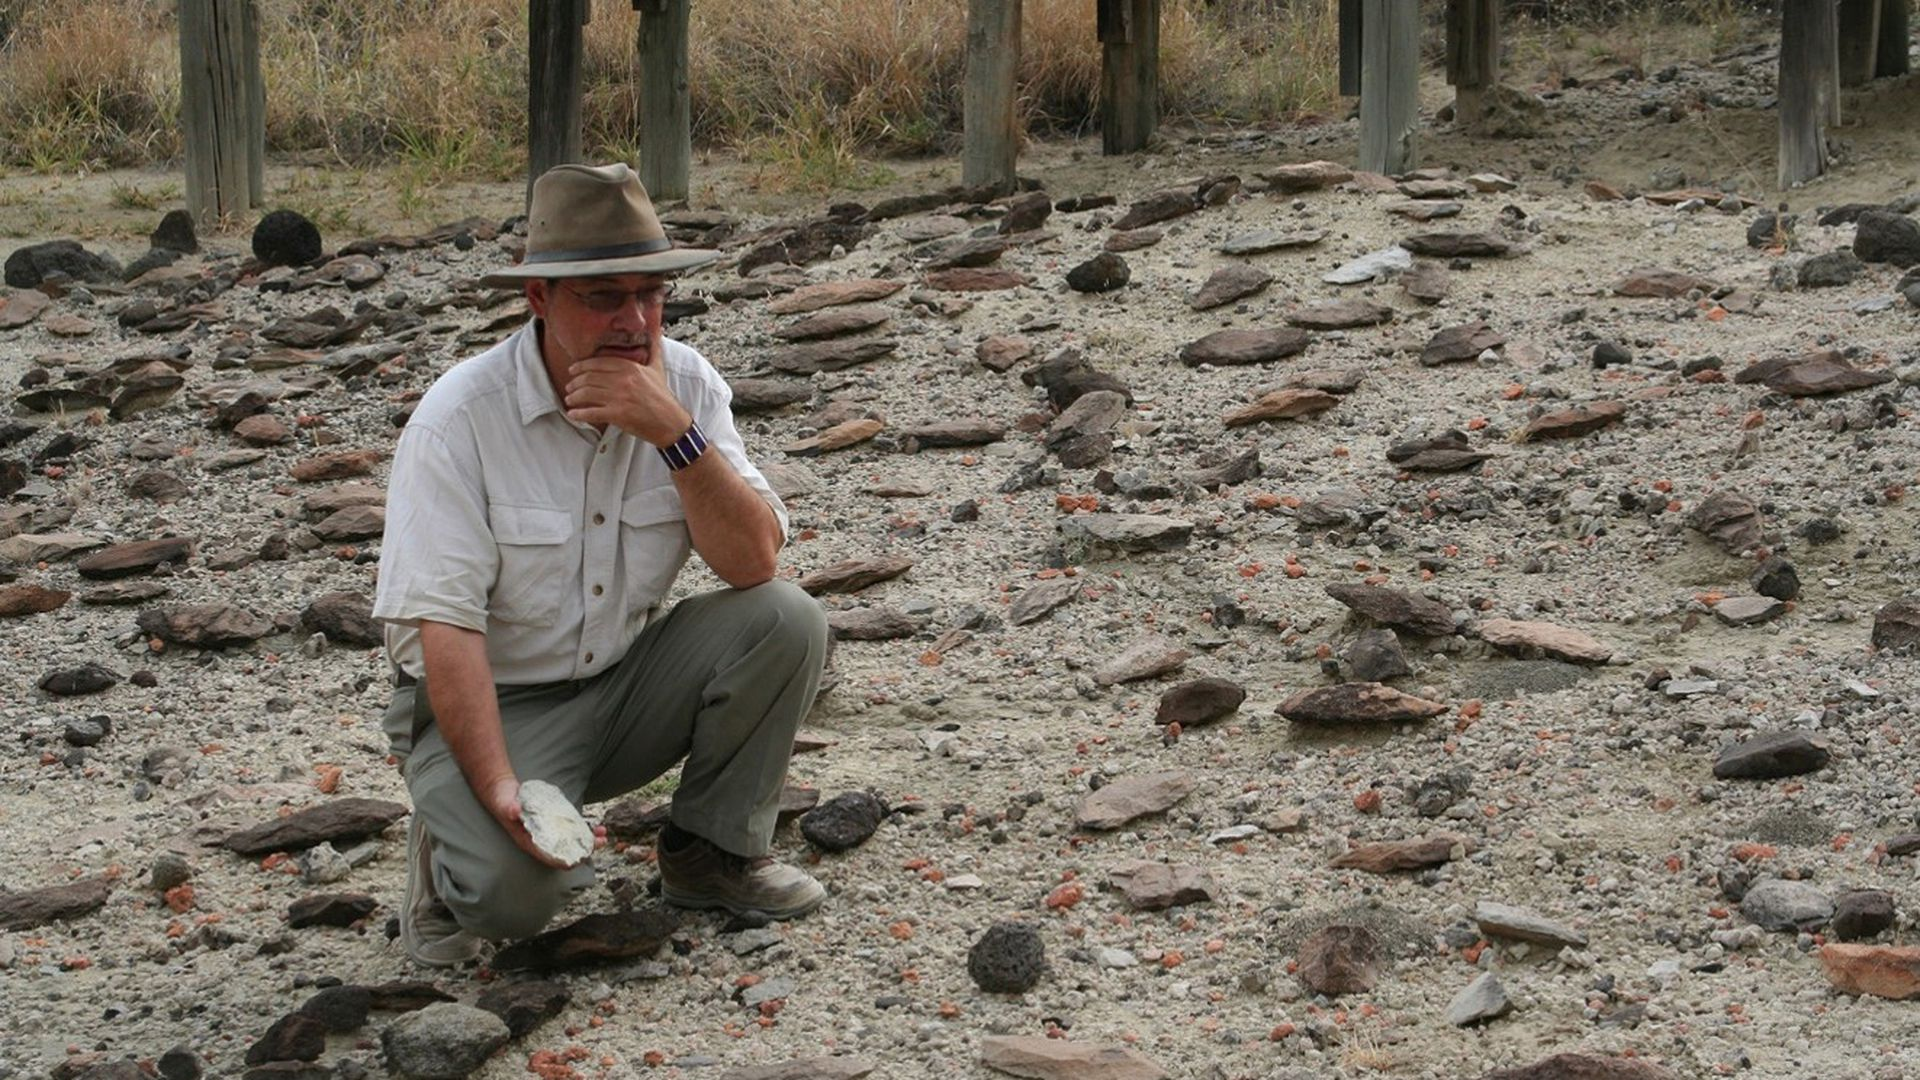 Rick Potts surveys assortment of Early Stone Age handaxes discovered in the Olorgesailie Basin, Kenya. Photo: Human Origins Program, Smithsonian